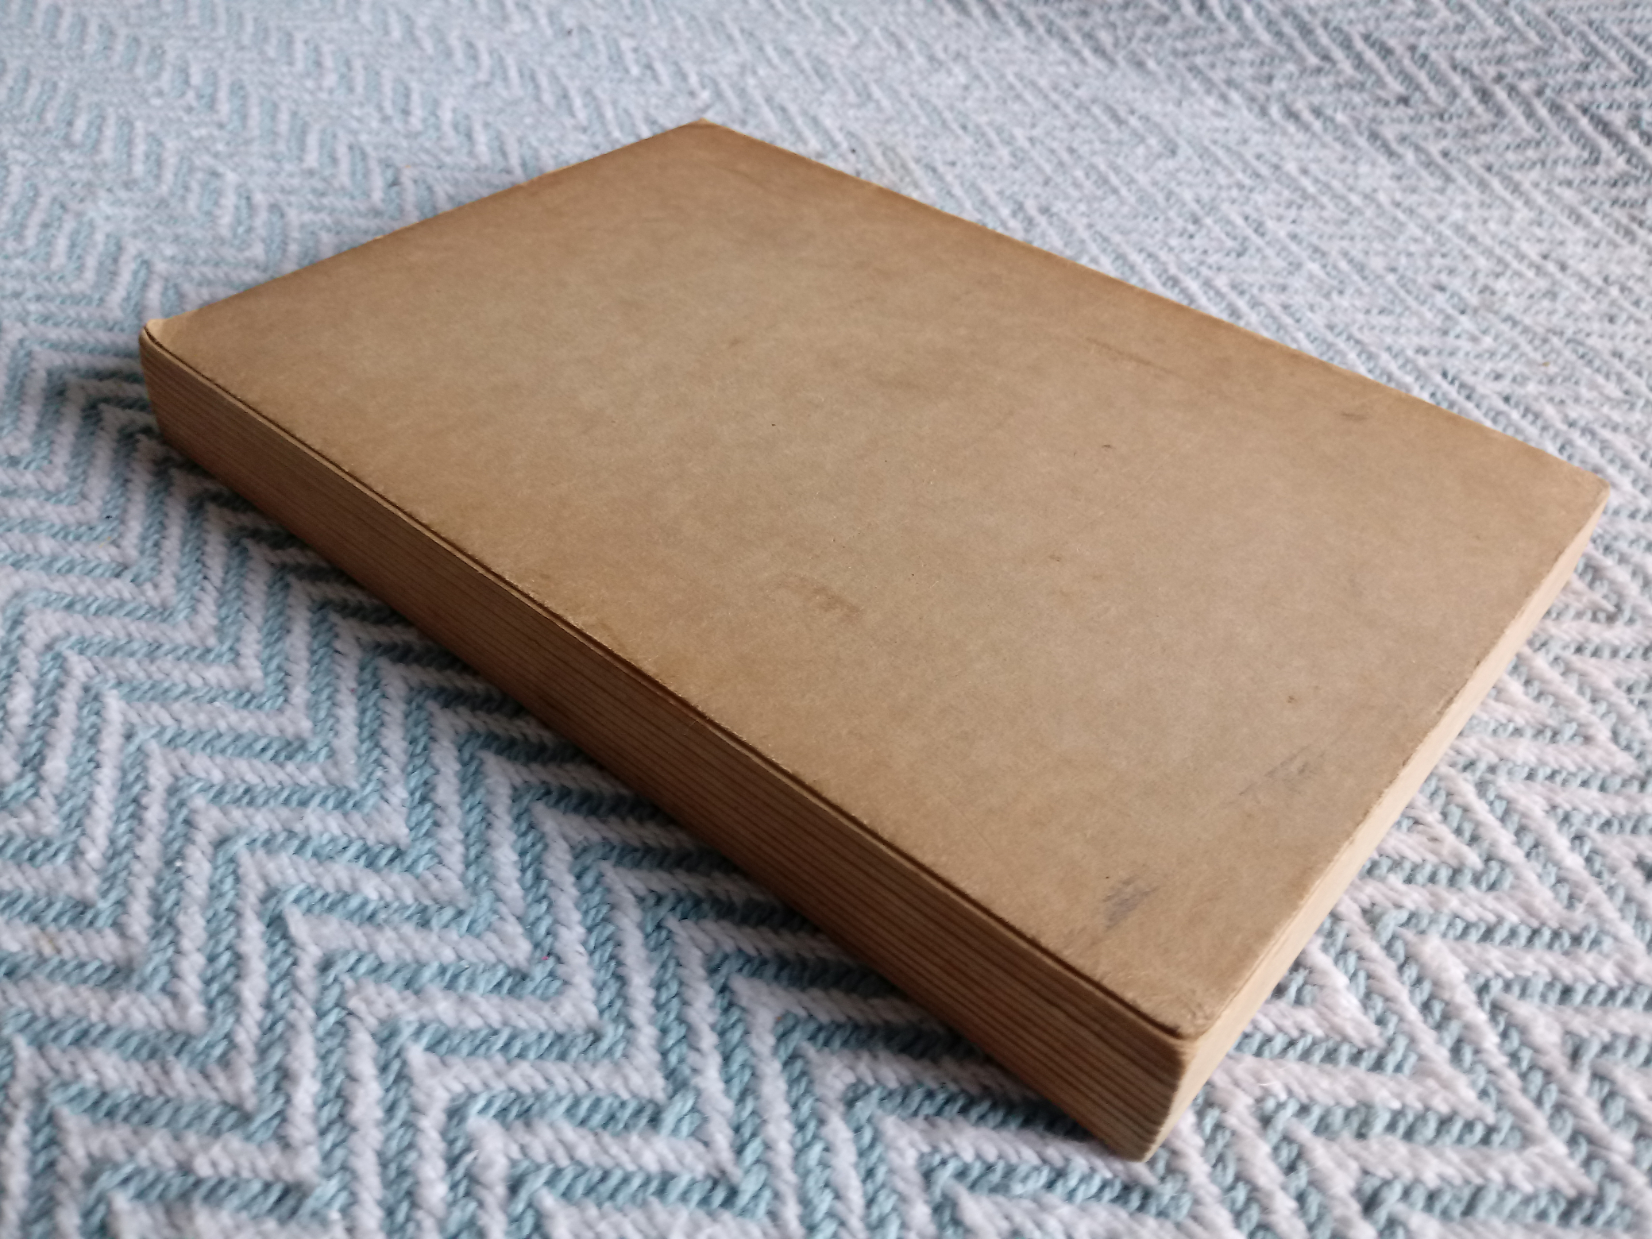 3 x Girl Guide Book of Ideas by E. M. R. Burgess softback books Published1939 and 1943 Brown, - Image 3 of 11